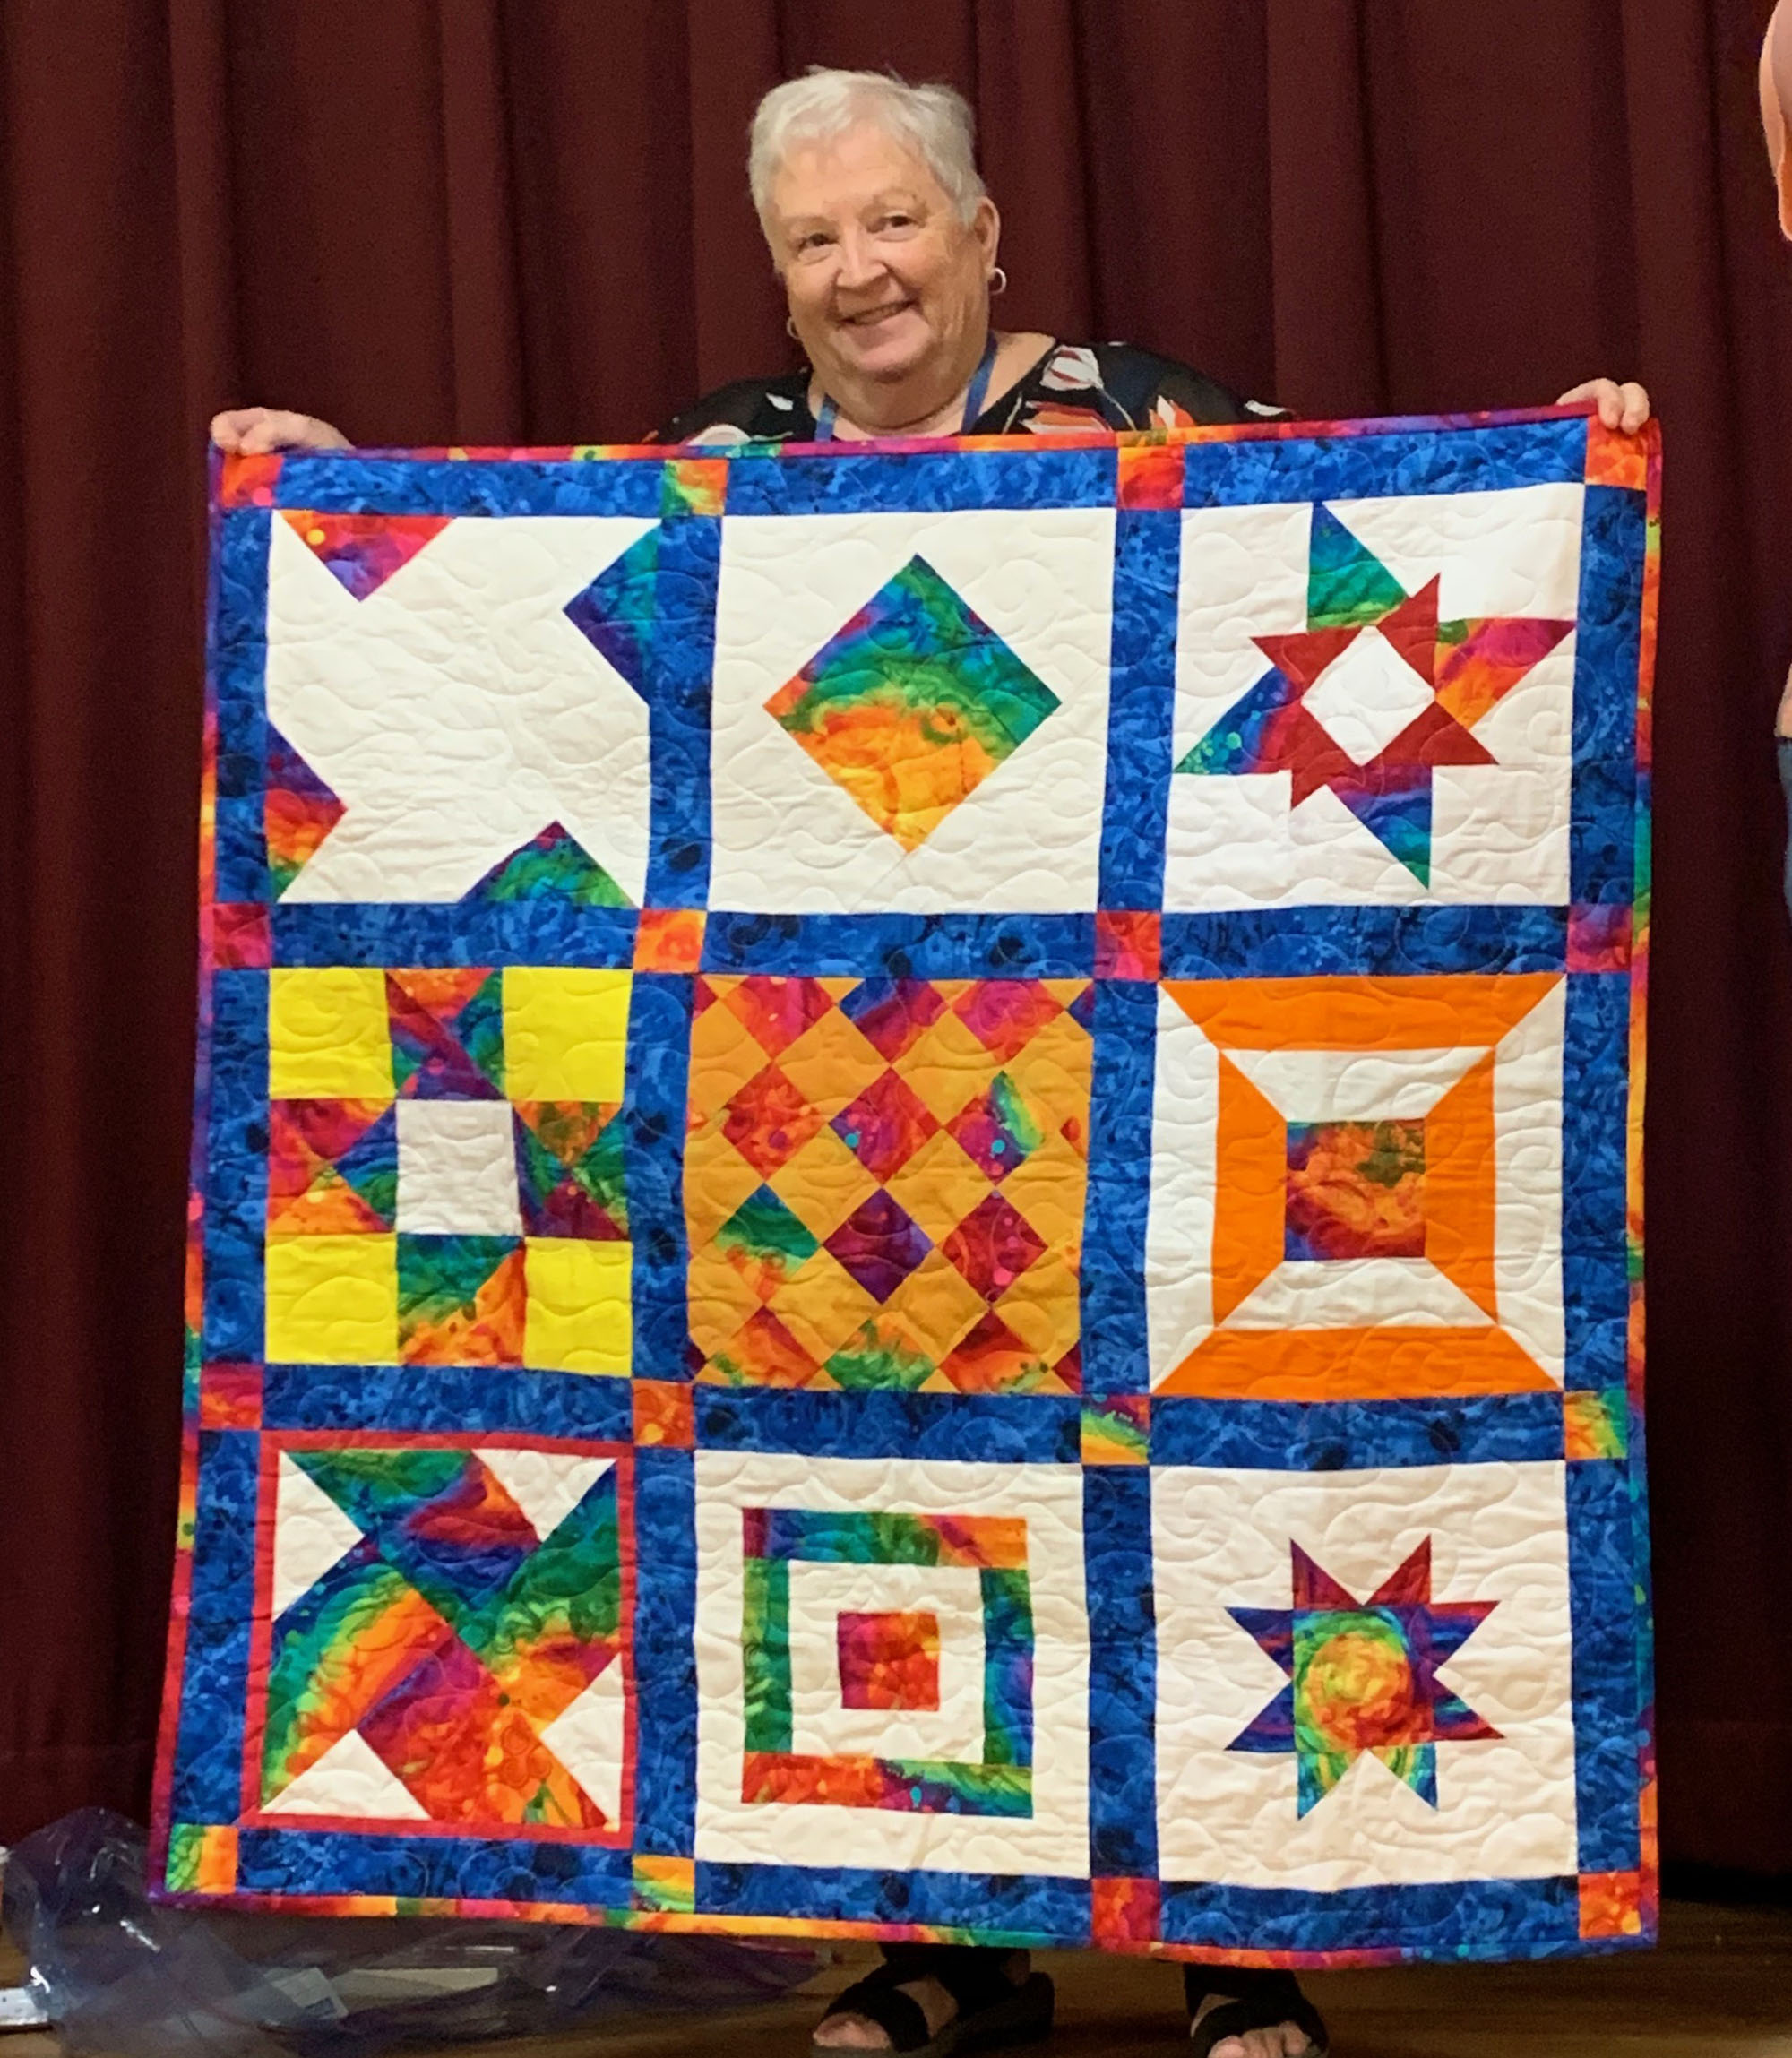 Raffle quilt — to be raffled off at our June meeting